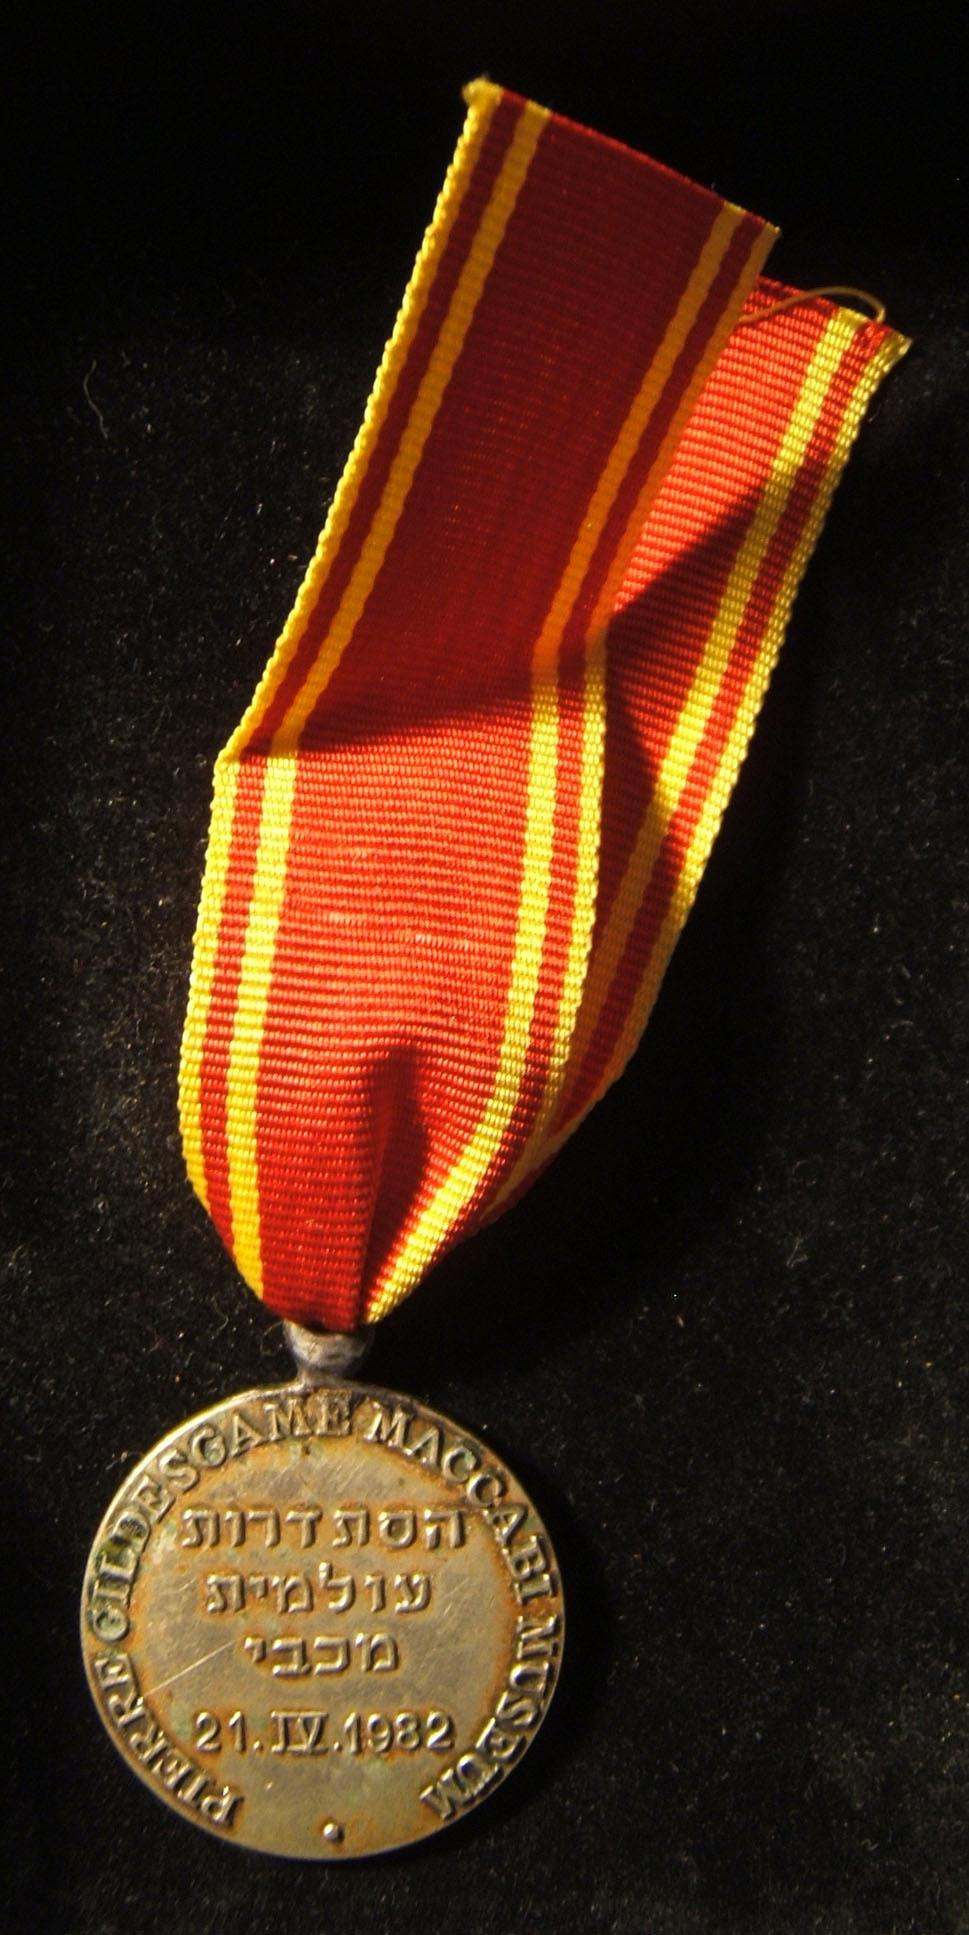 'Pierre Gildesgame Maccabi Museum' foundation medal in nickel(?), 1982